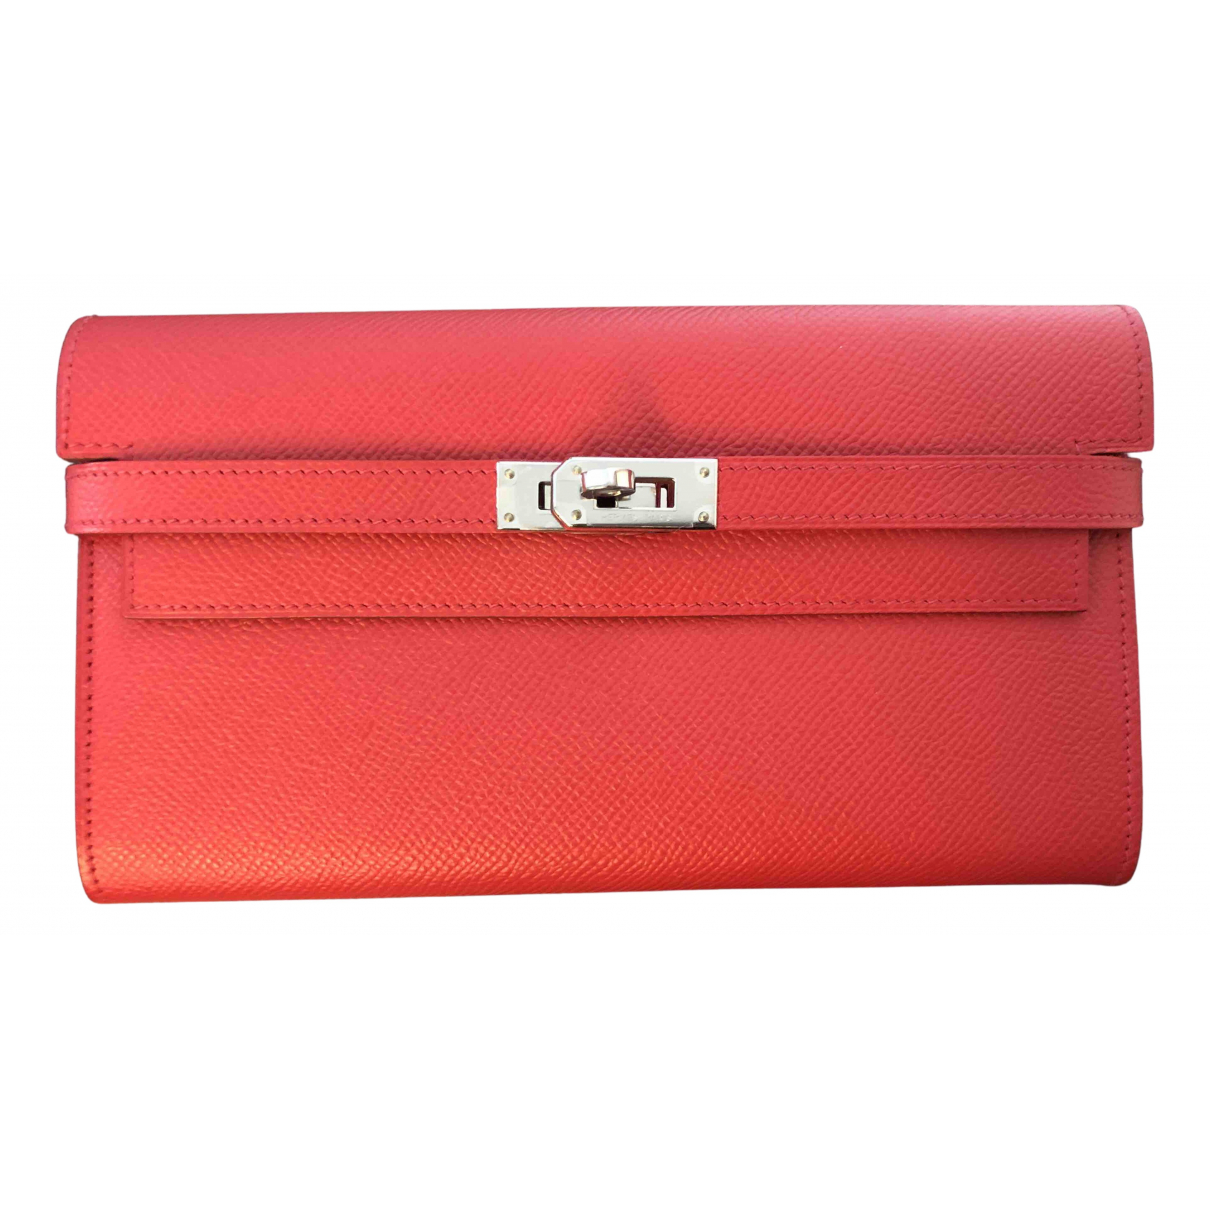 Hermès Kelly Red Leather wallet for Women N